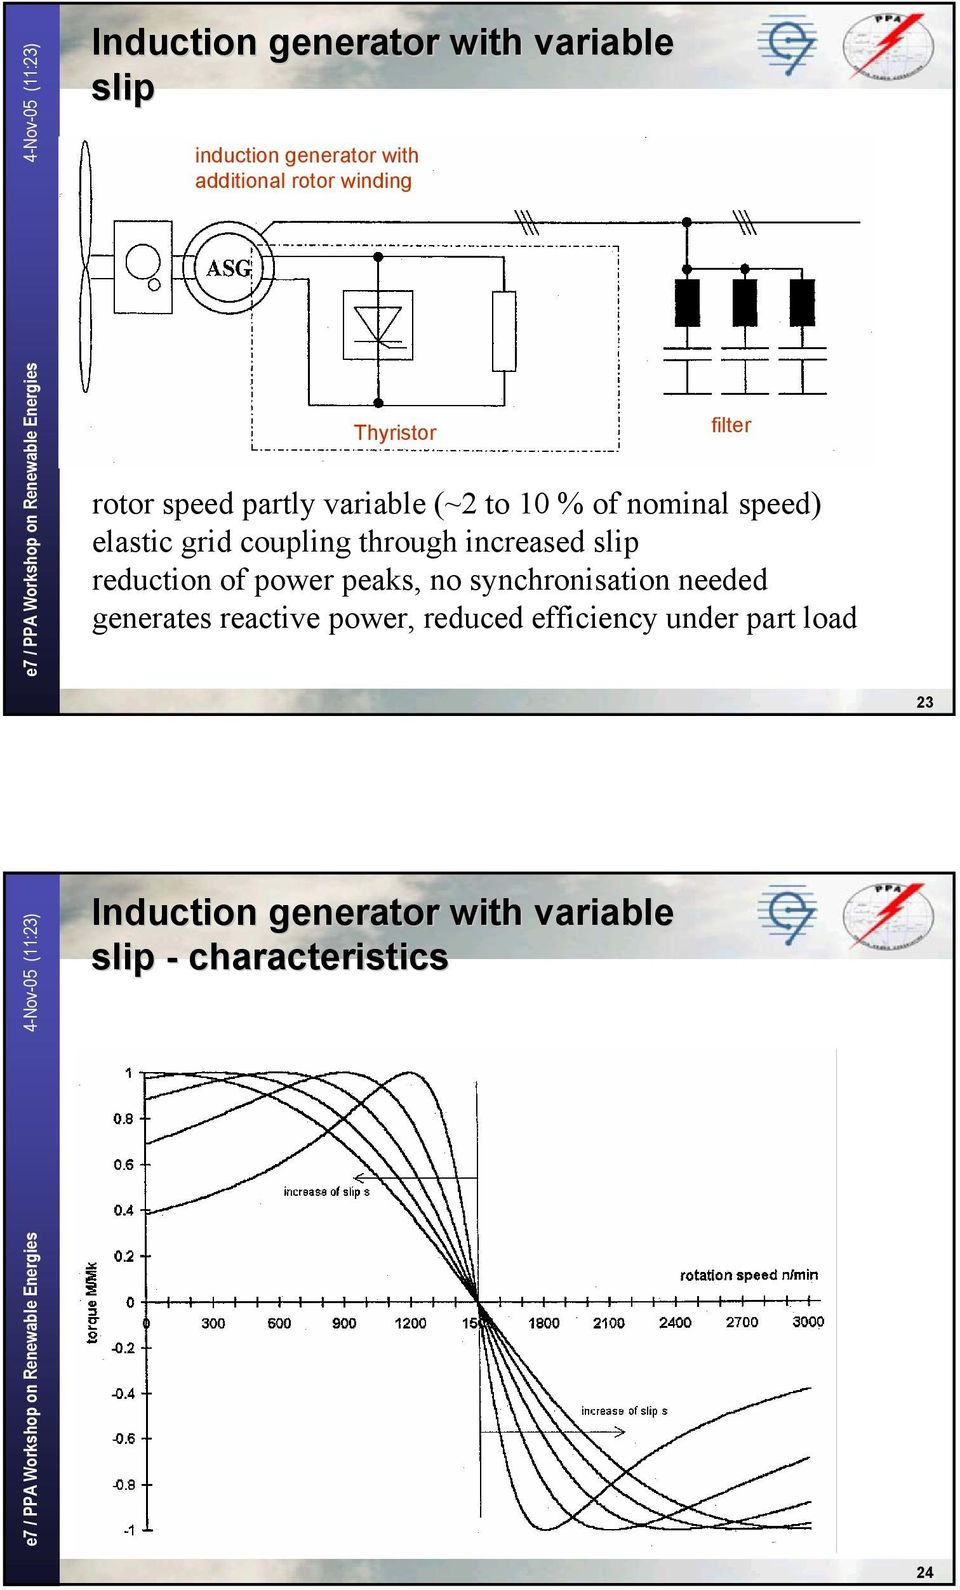 coupling through increased slip reduction of power peaks, no synchronisation needed generates